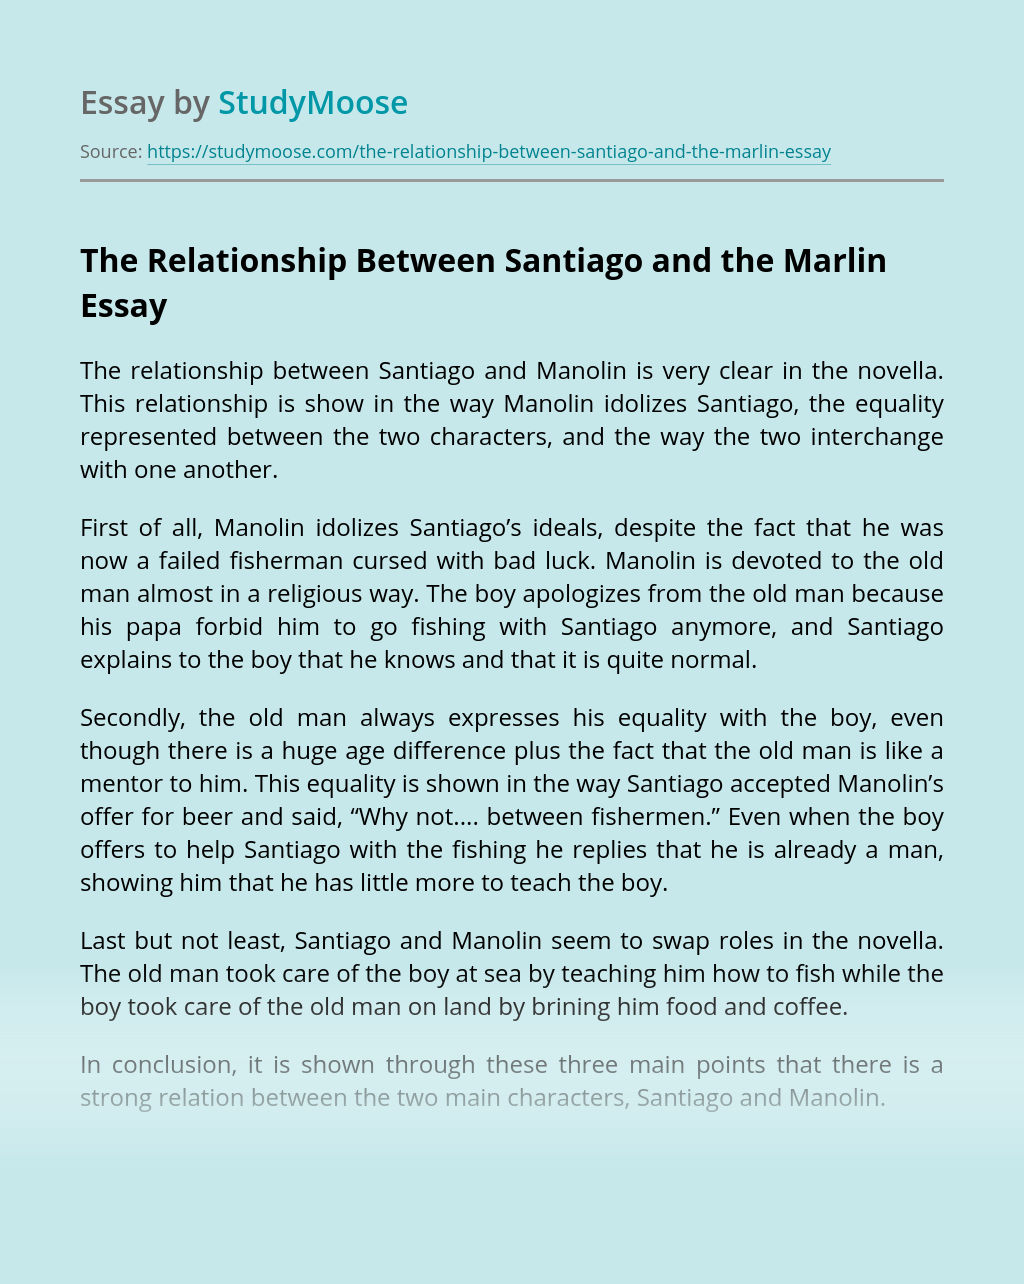 The Relationship Between Santiago and the Marlin